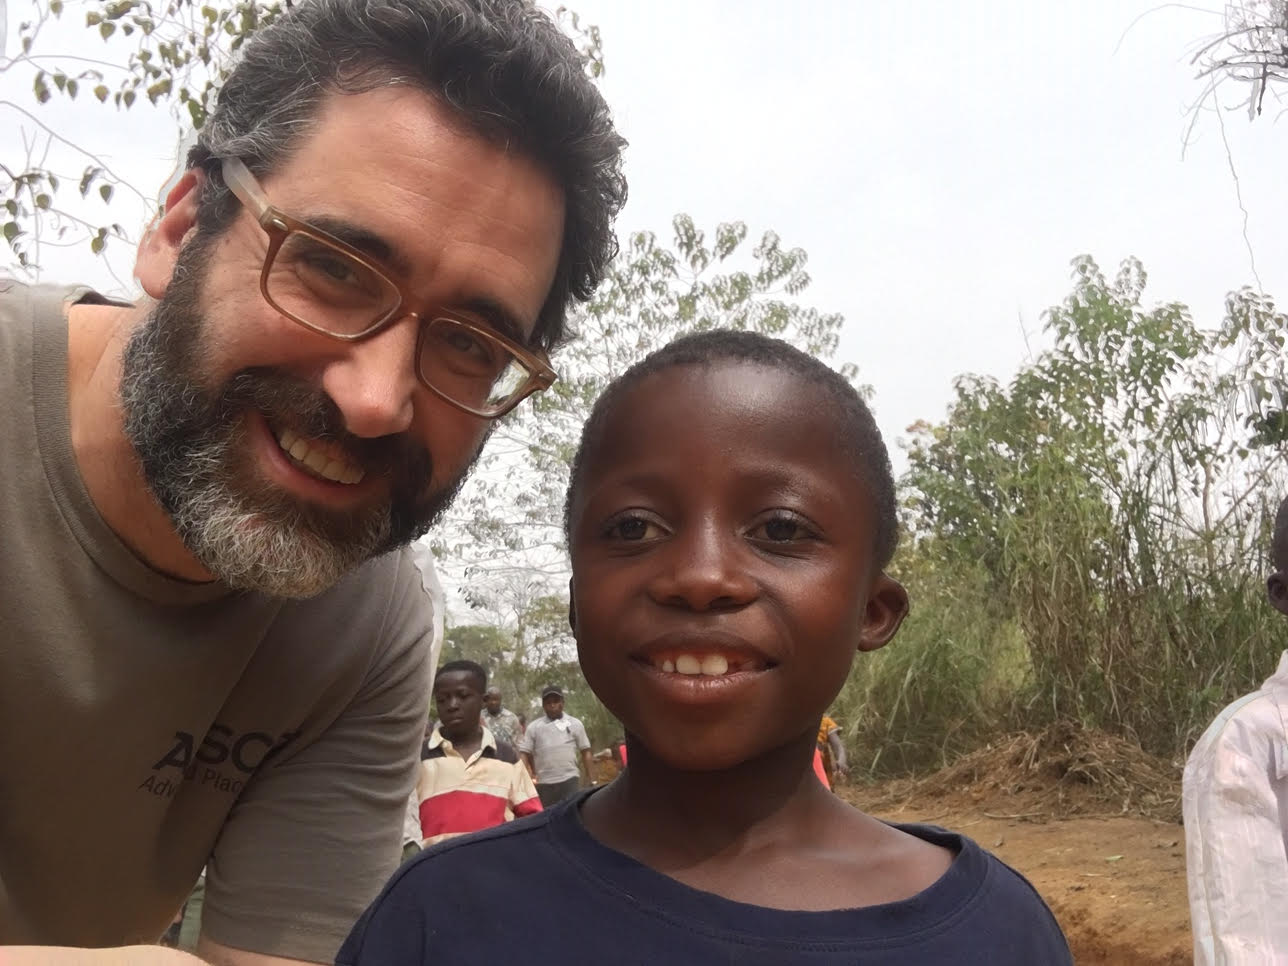 History teacher Robert Fenster in Africa climbing the Wara Wara Mountain with new friend, Ali.